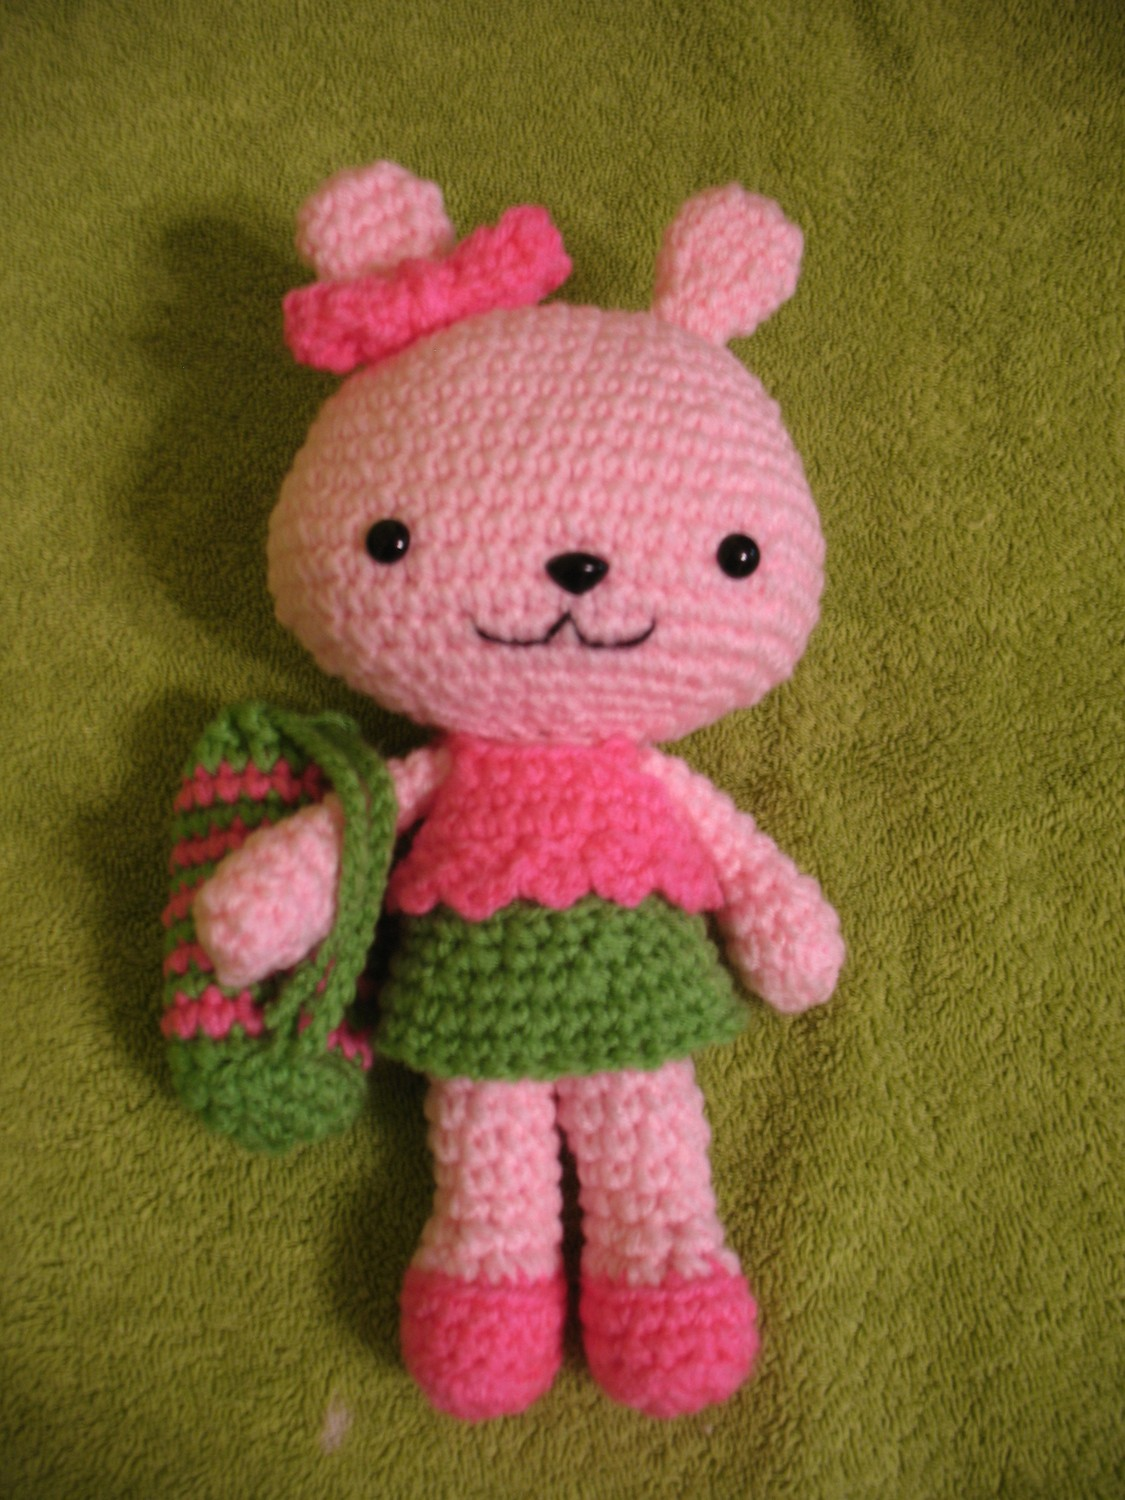 Pinky The Rabbit Amigurumi Crochet Pattern : Pinky the Bunny - Sayjai Amigurumi Crochet Patterns ~ K ...